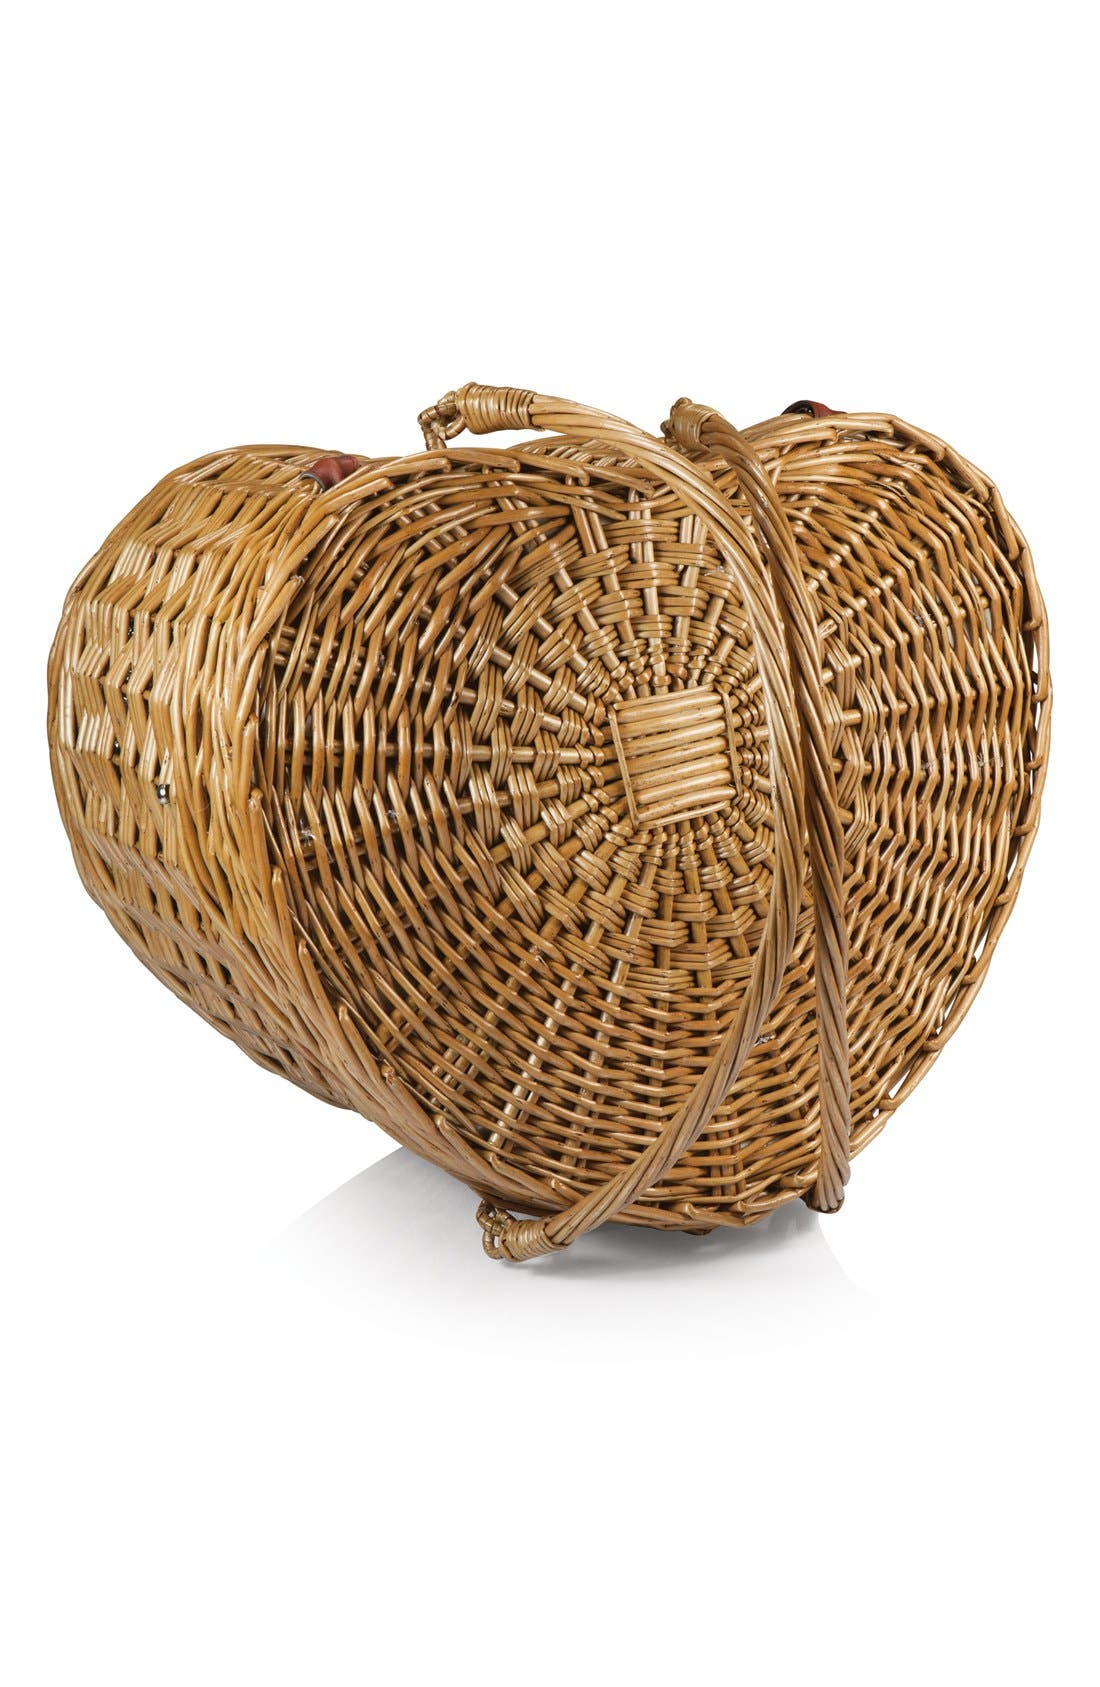 Heart Shaped Wicker Picnic Basket,                             Alternate thumbnail 4, color,                             Brown